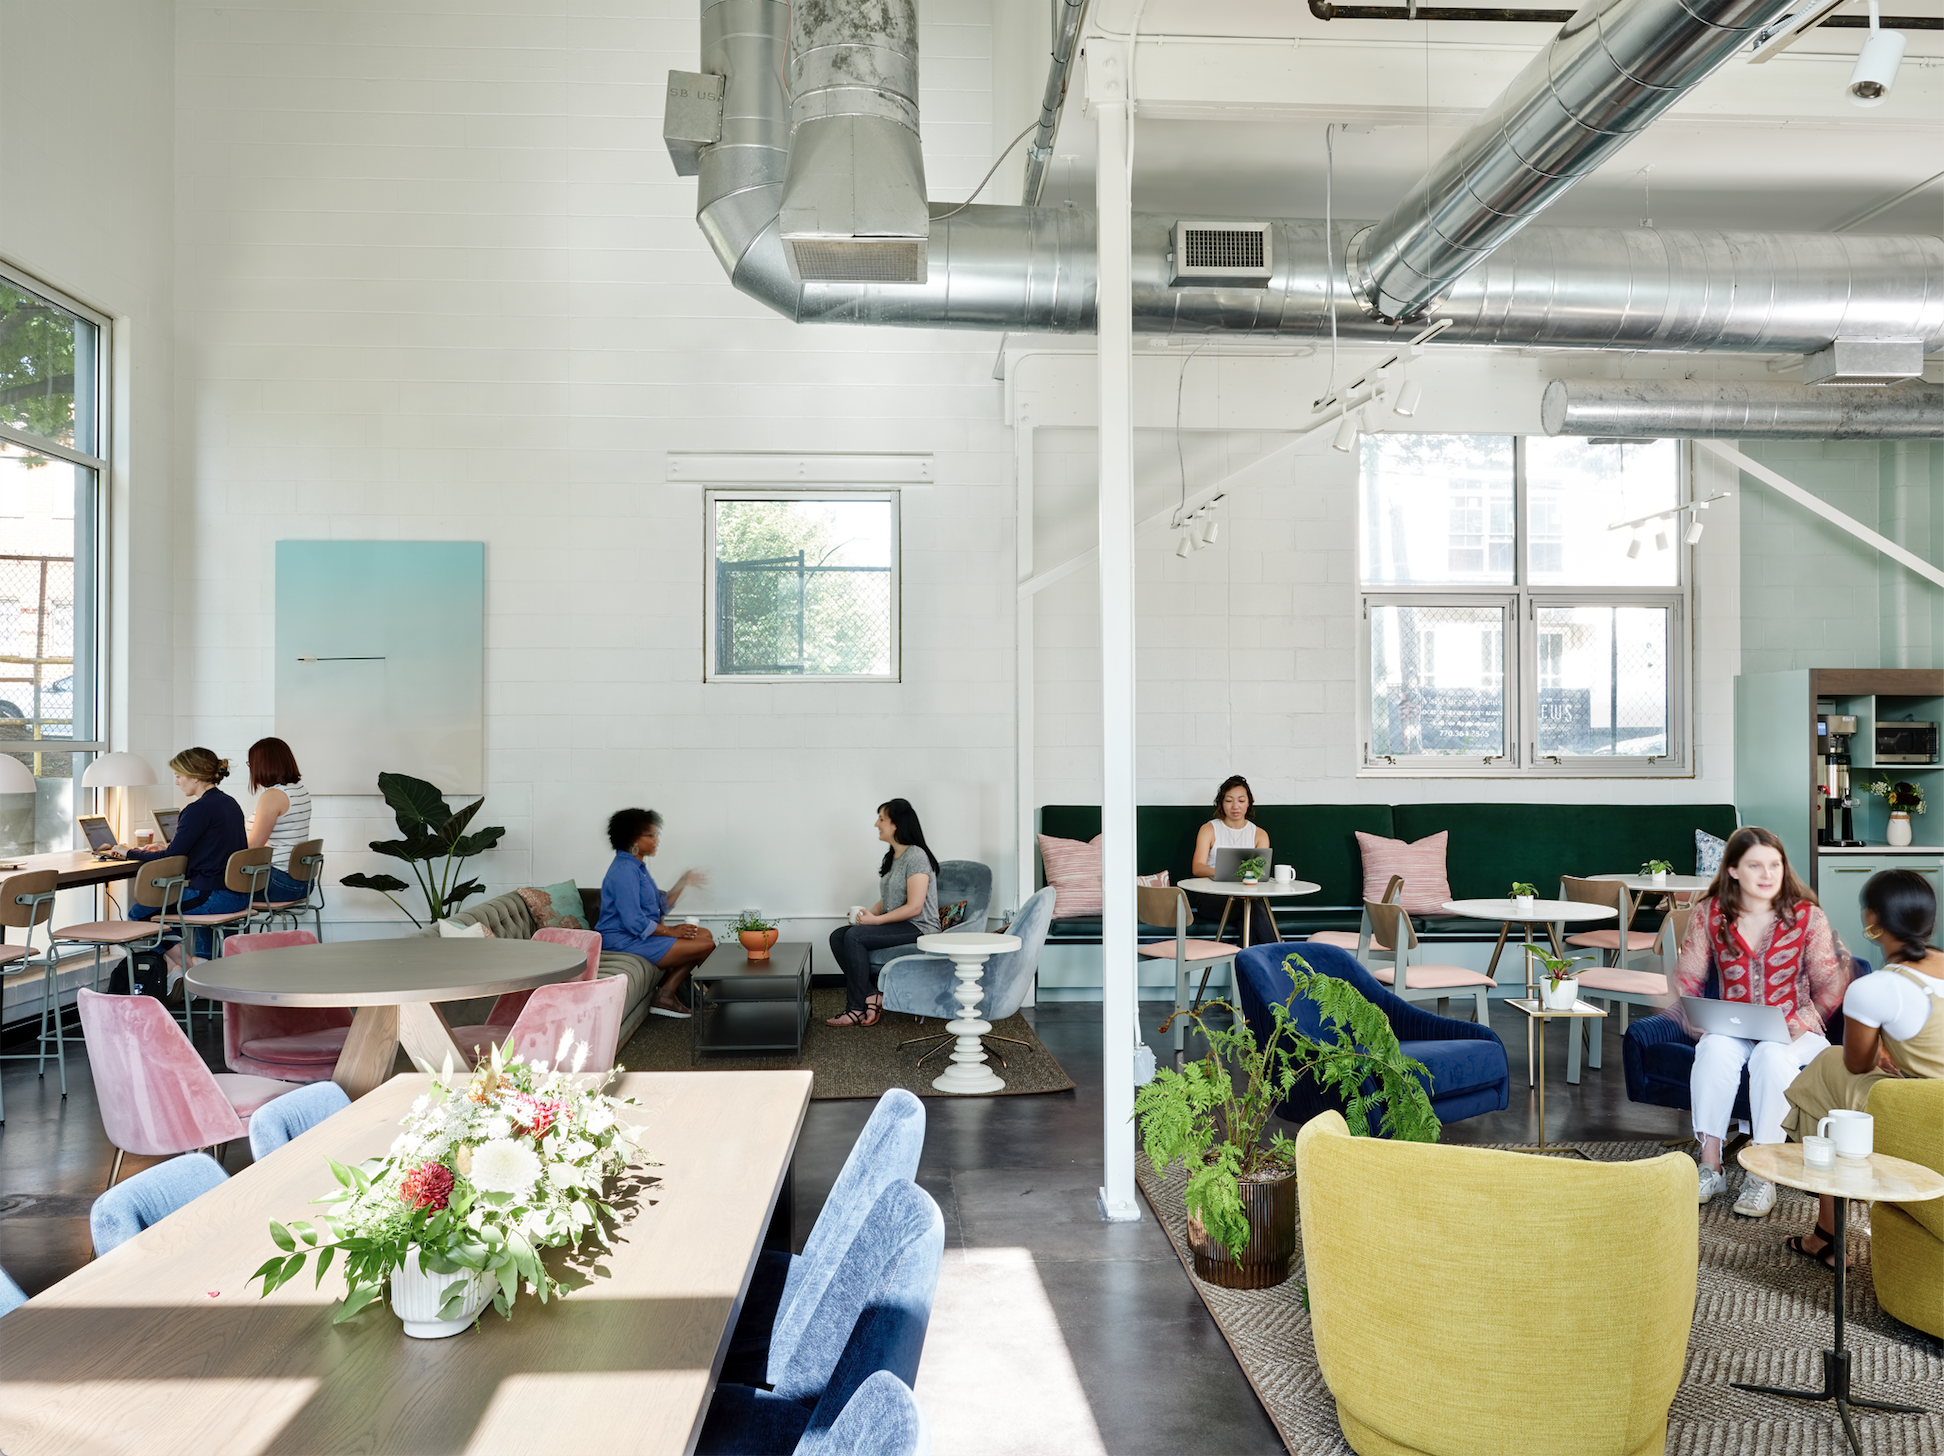 5 Design Details That Elevate This Atlanta Coworking Space